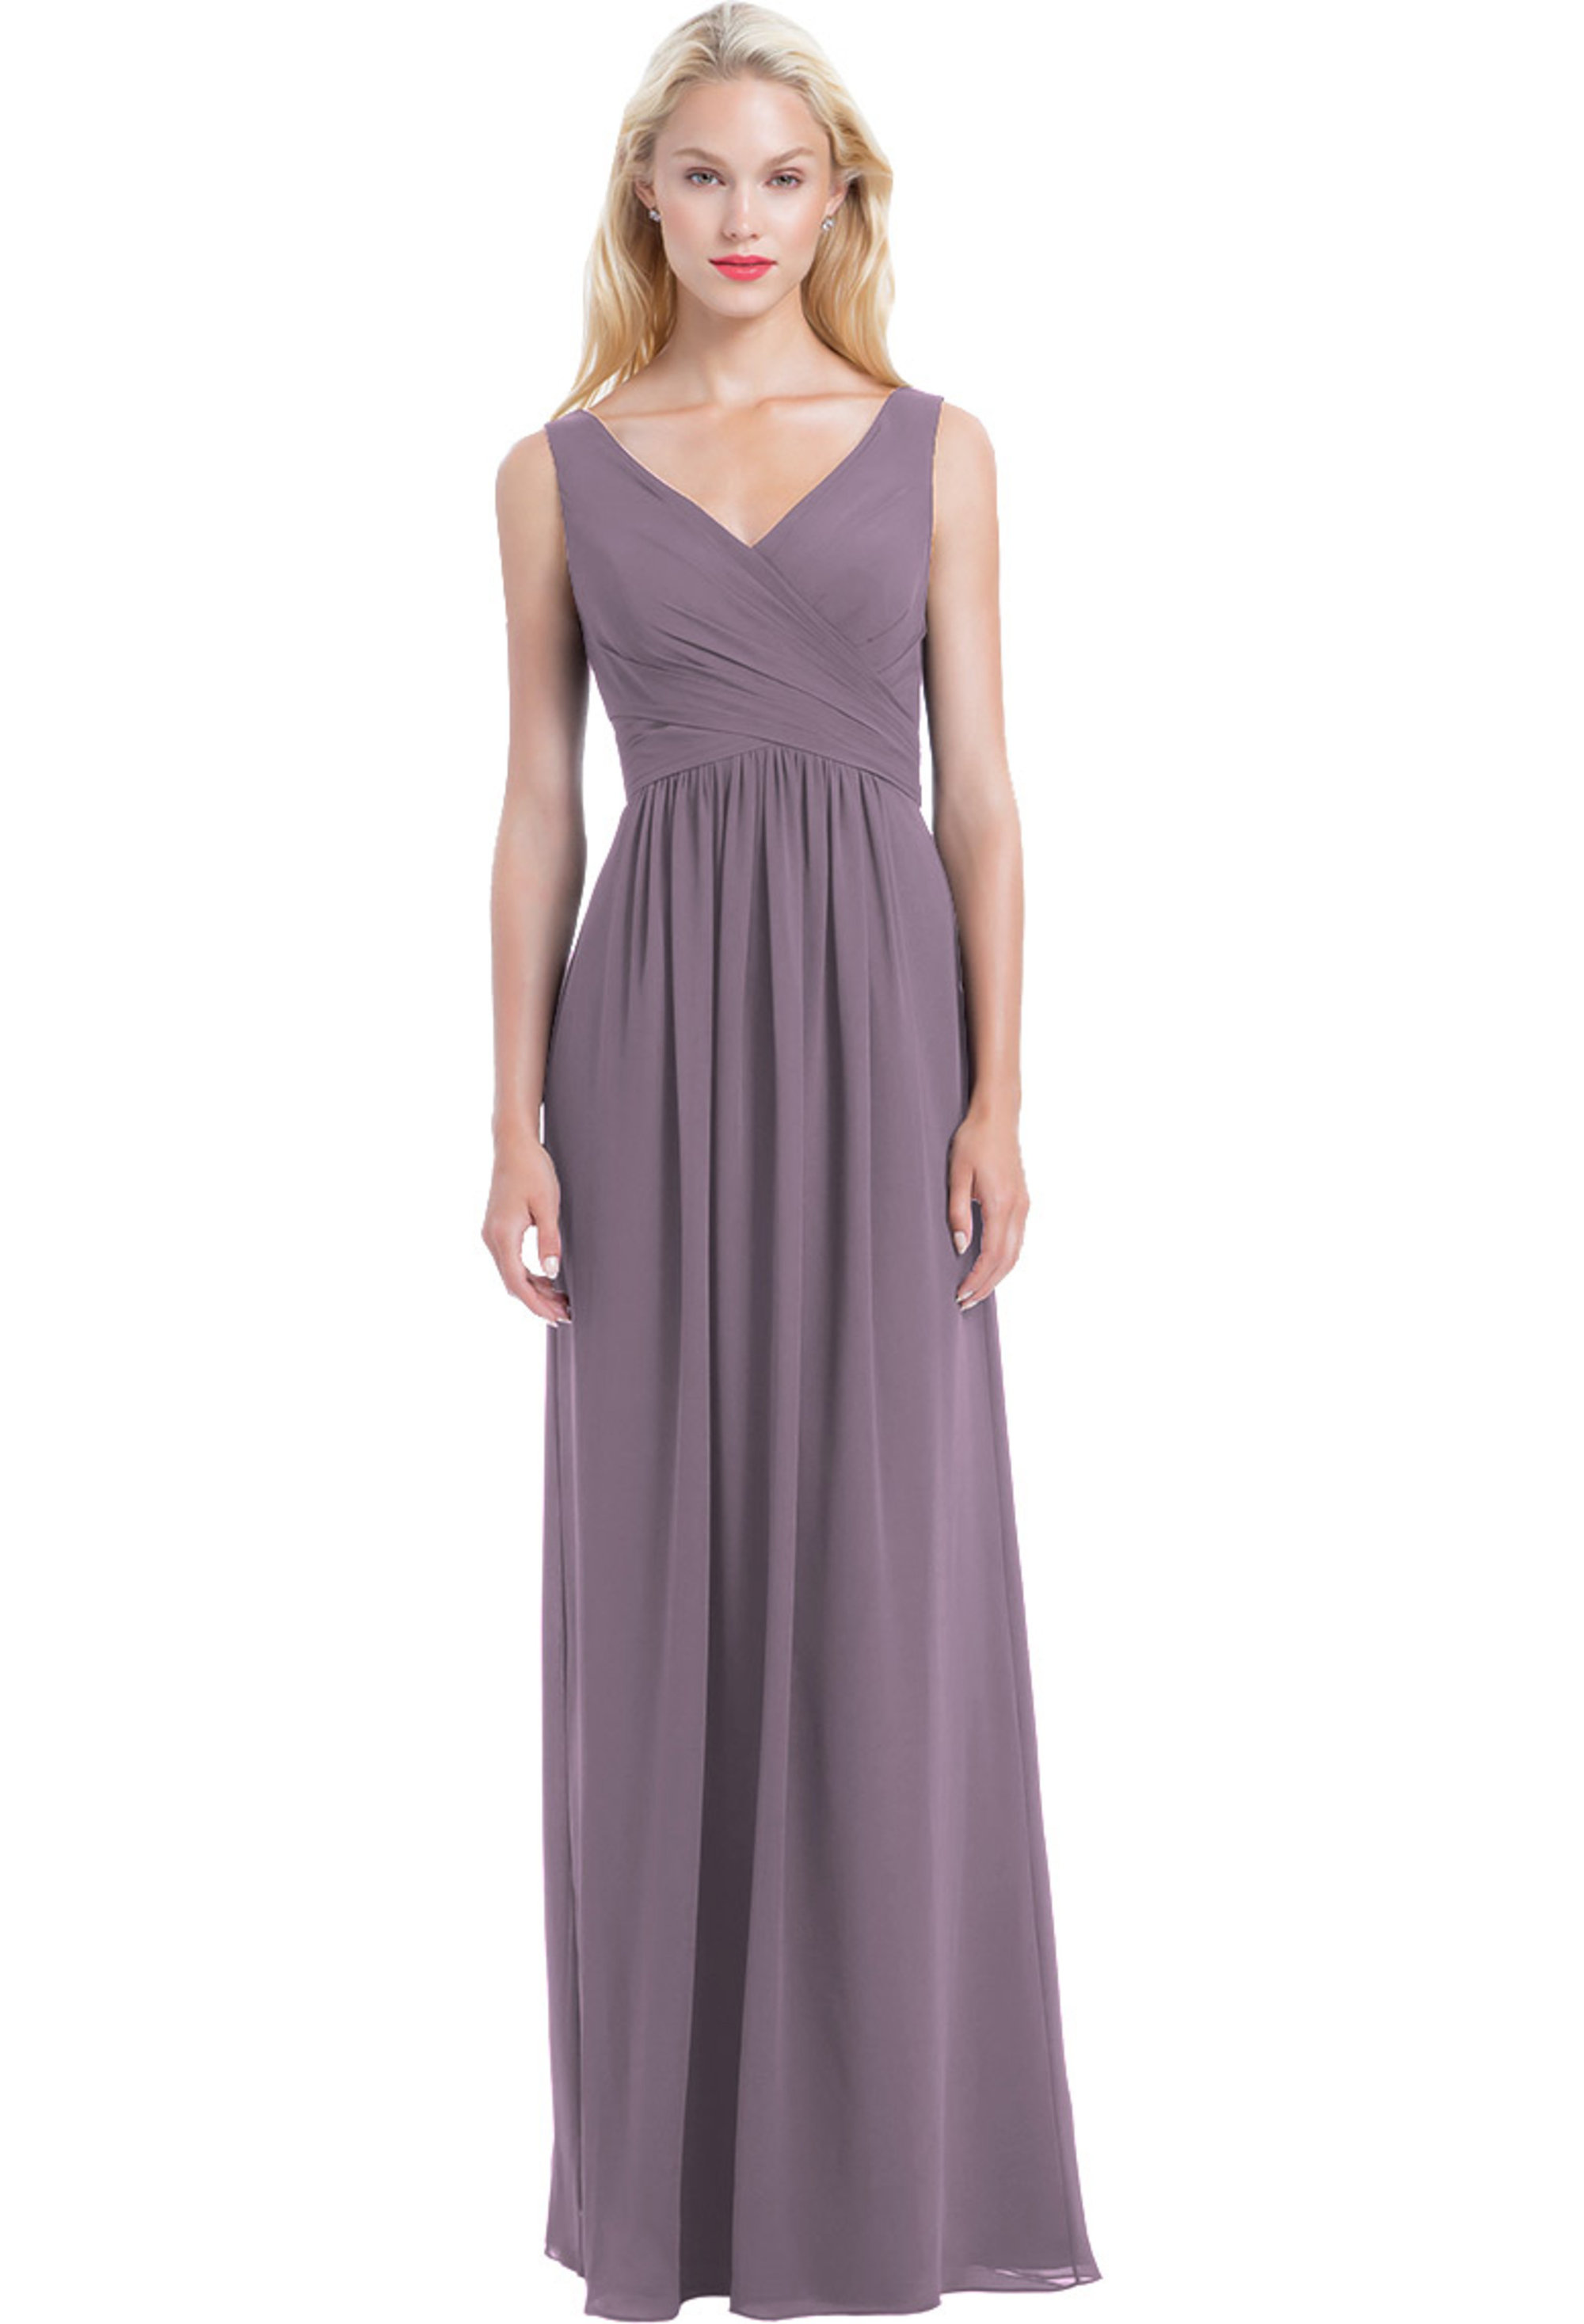 Bill Levkoff VICTORIAN LILAC Chiffon Sleeveless A-line gown, $210.00 Front